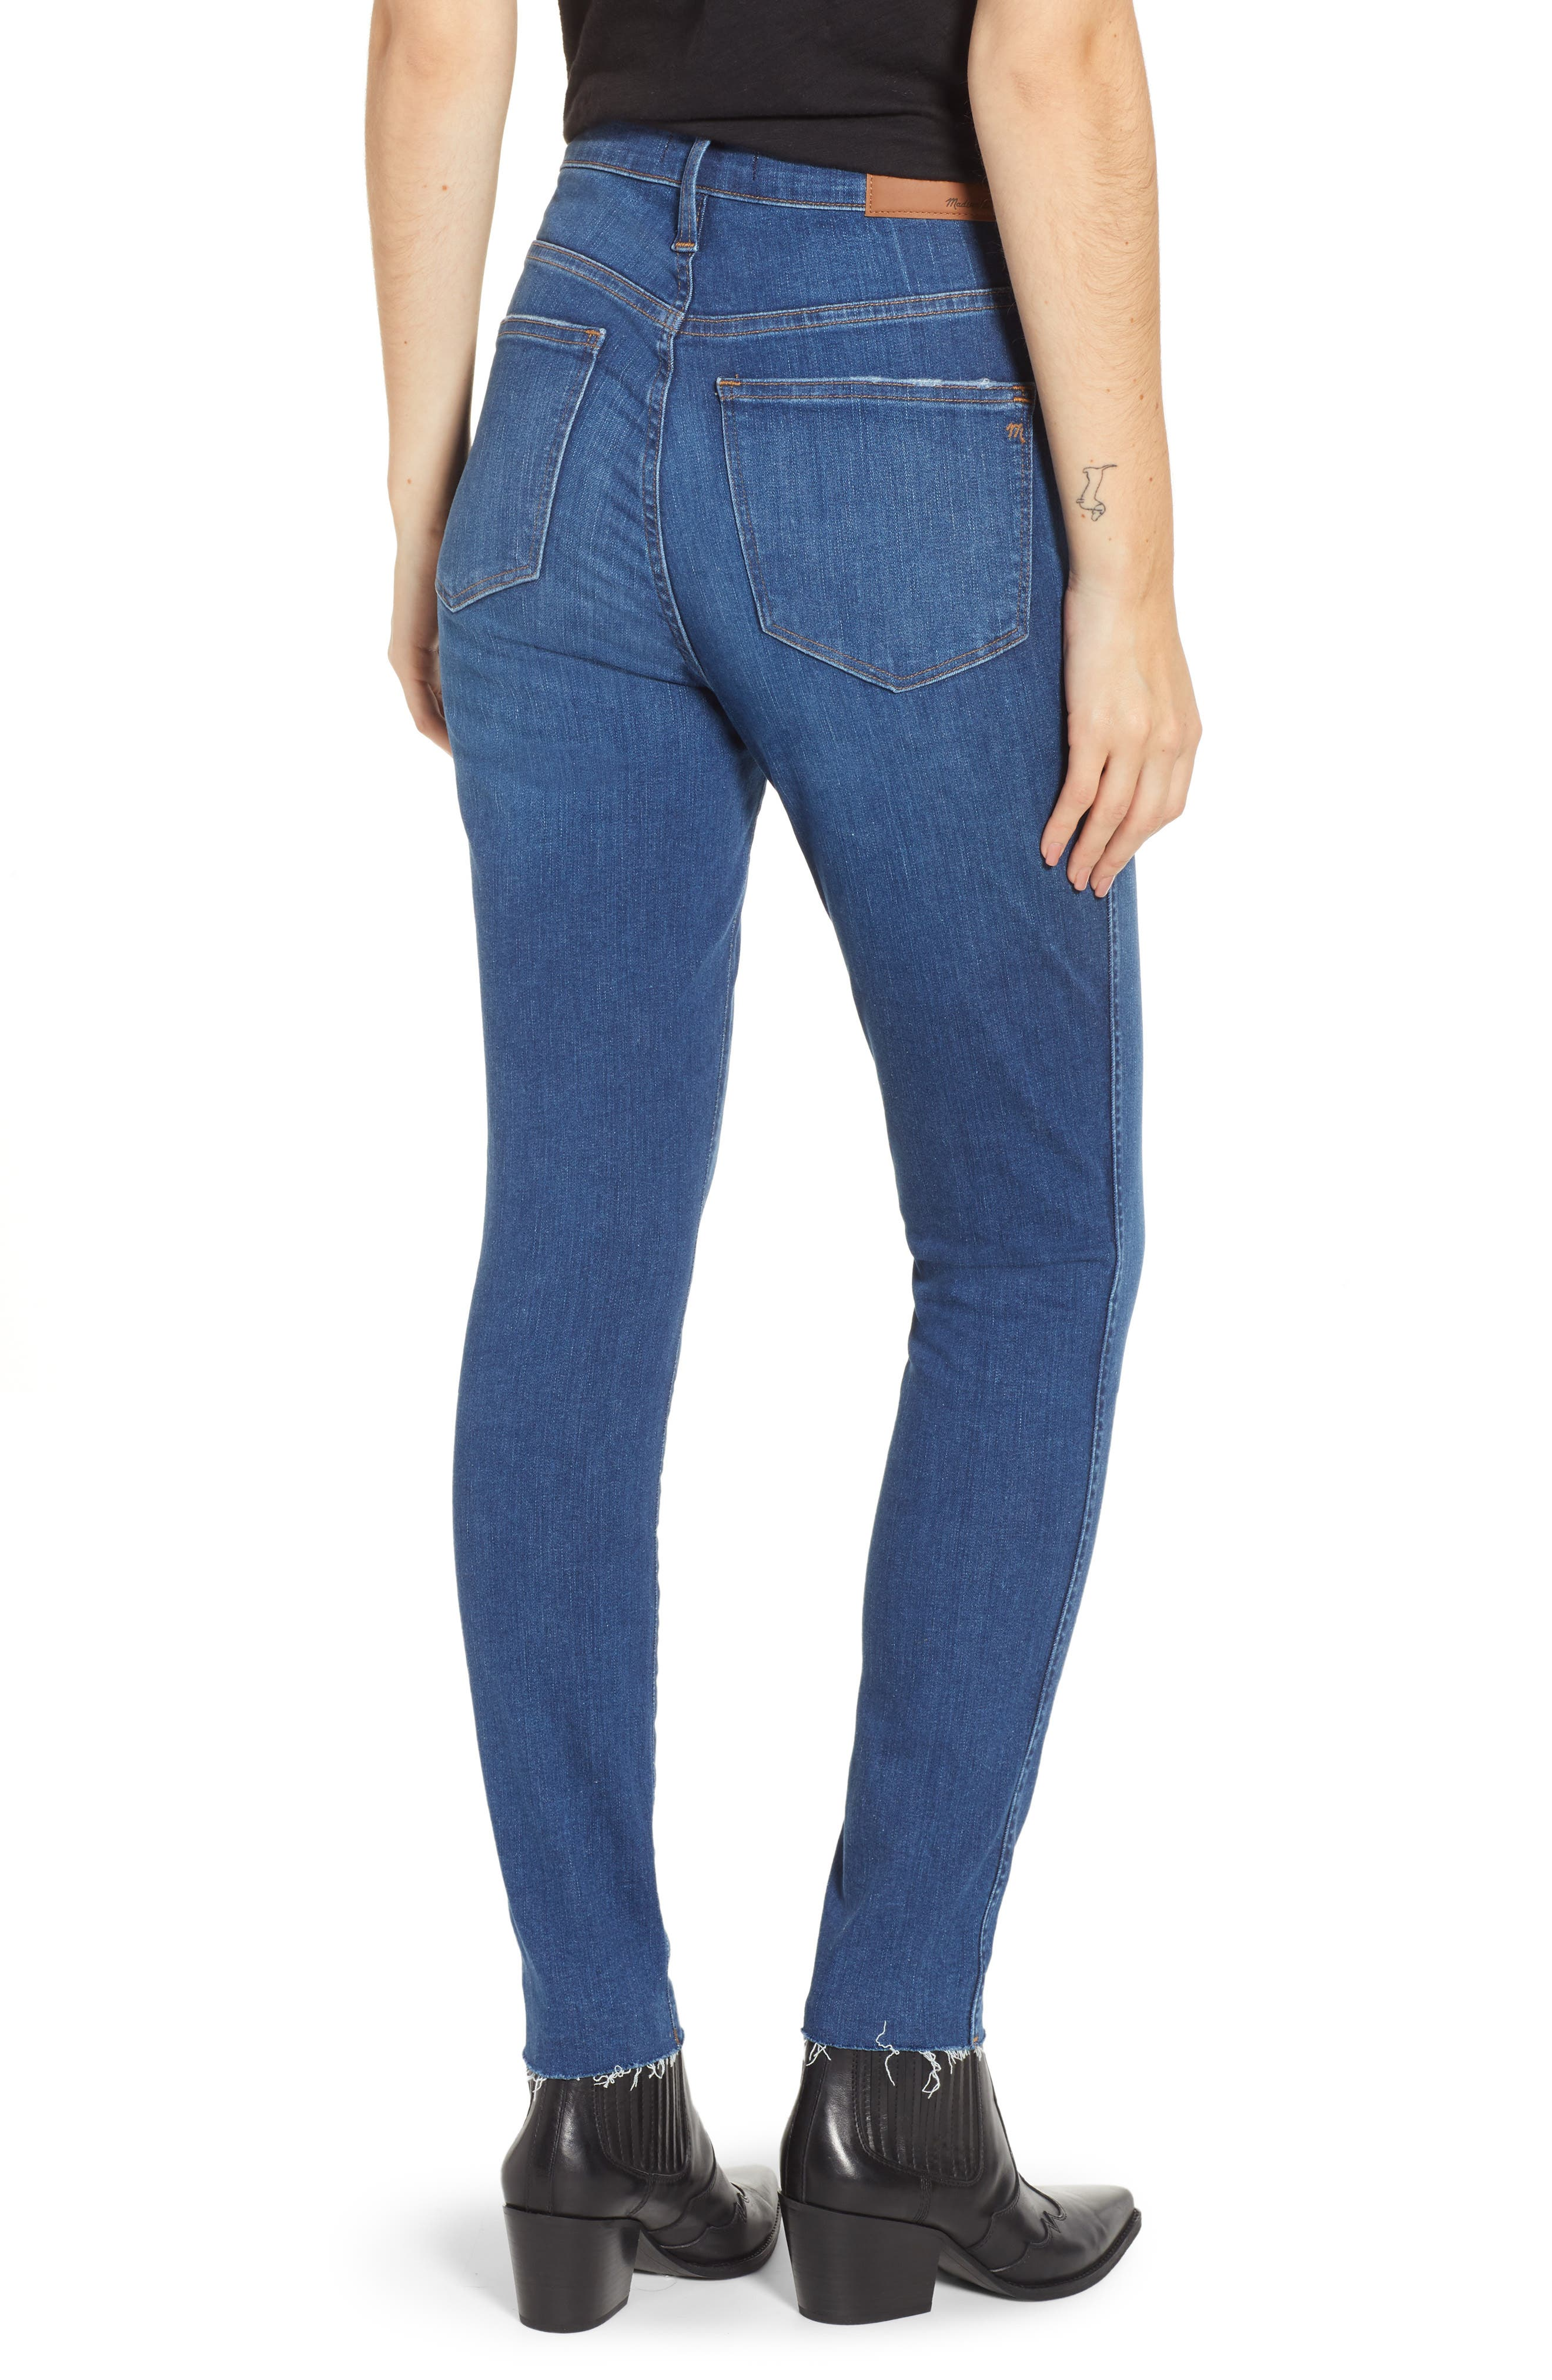 10-Inch High Rise Skinny Jeans,                             Alternate thumbnail 2, color,                             HANNA